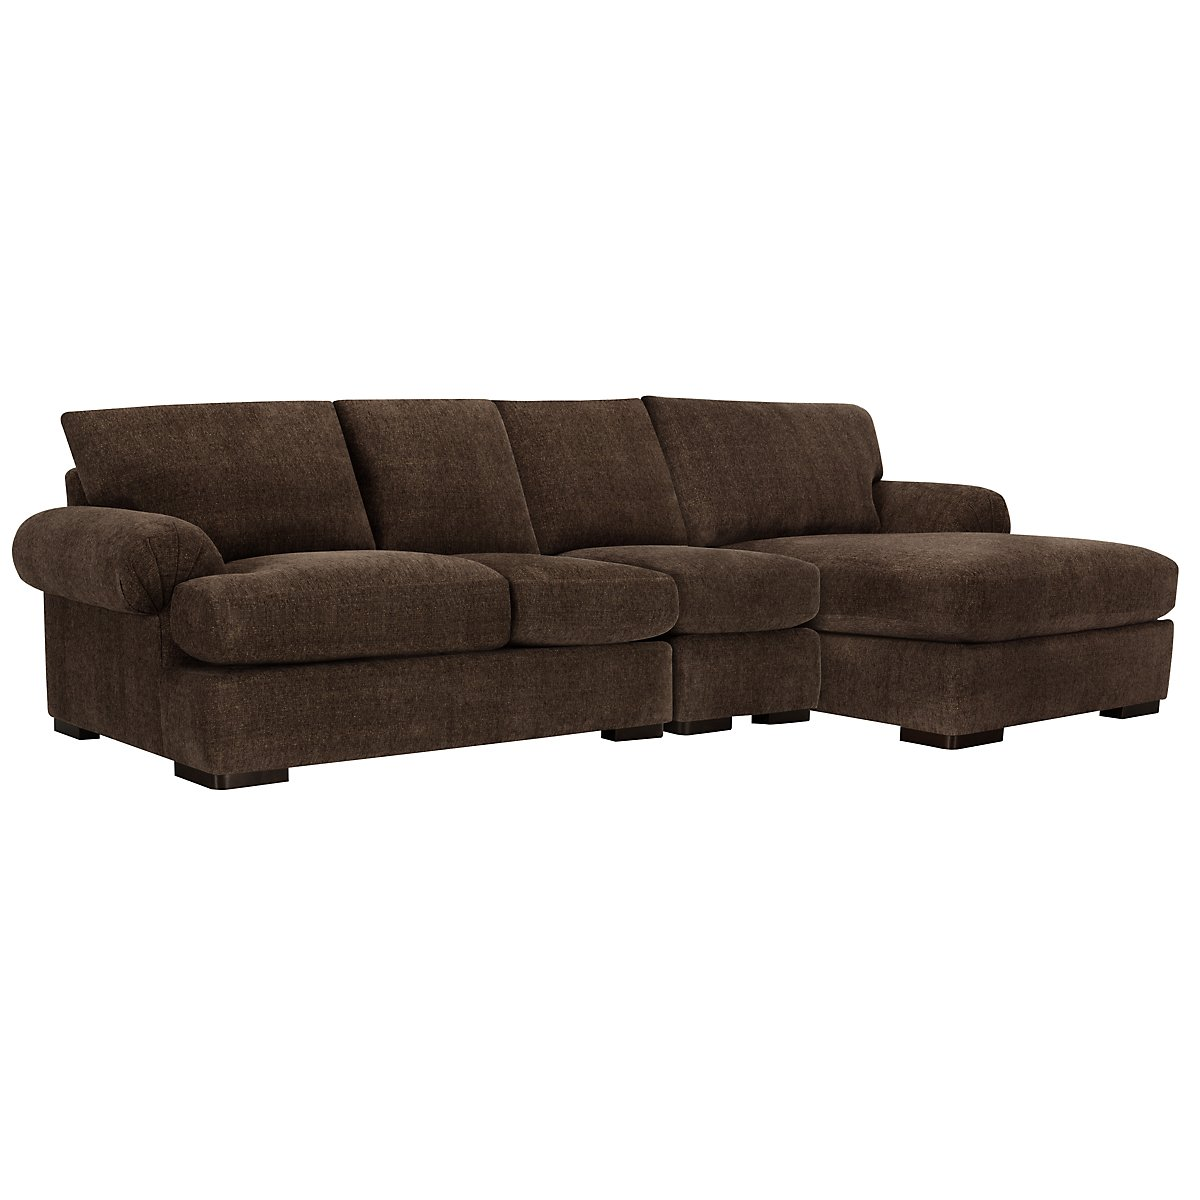 Belair Dark Brown Fabric Small Right Chaise Sectional